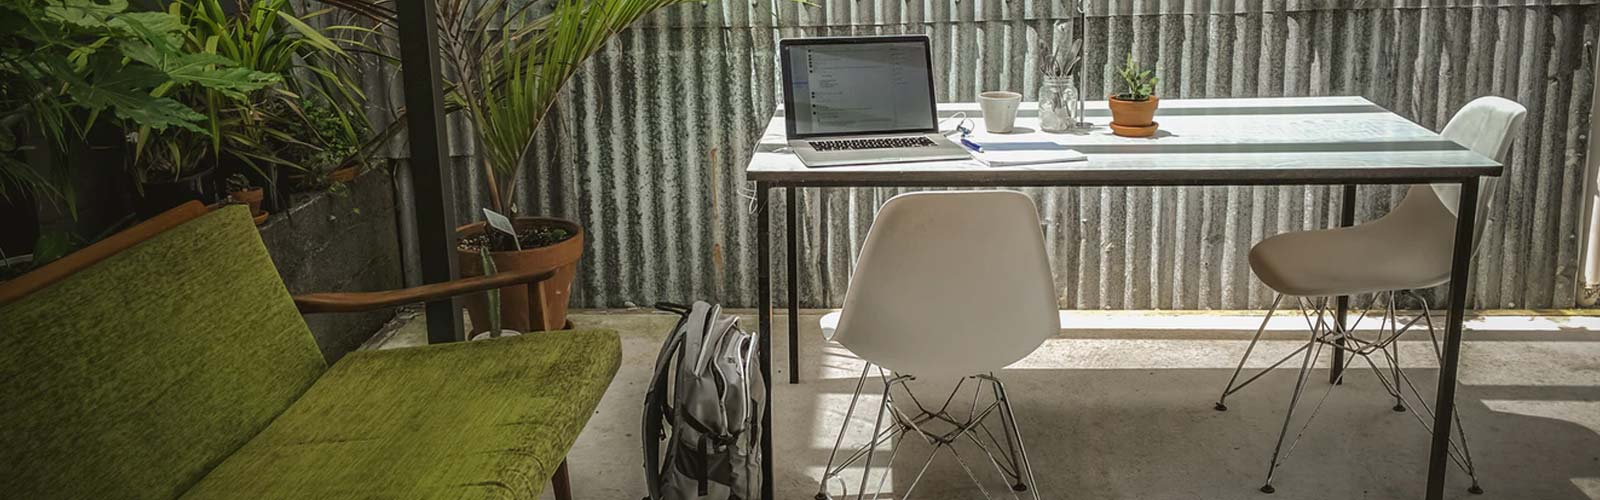 The benefits of an outdoor workspace